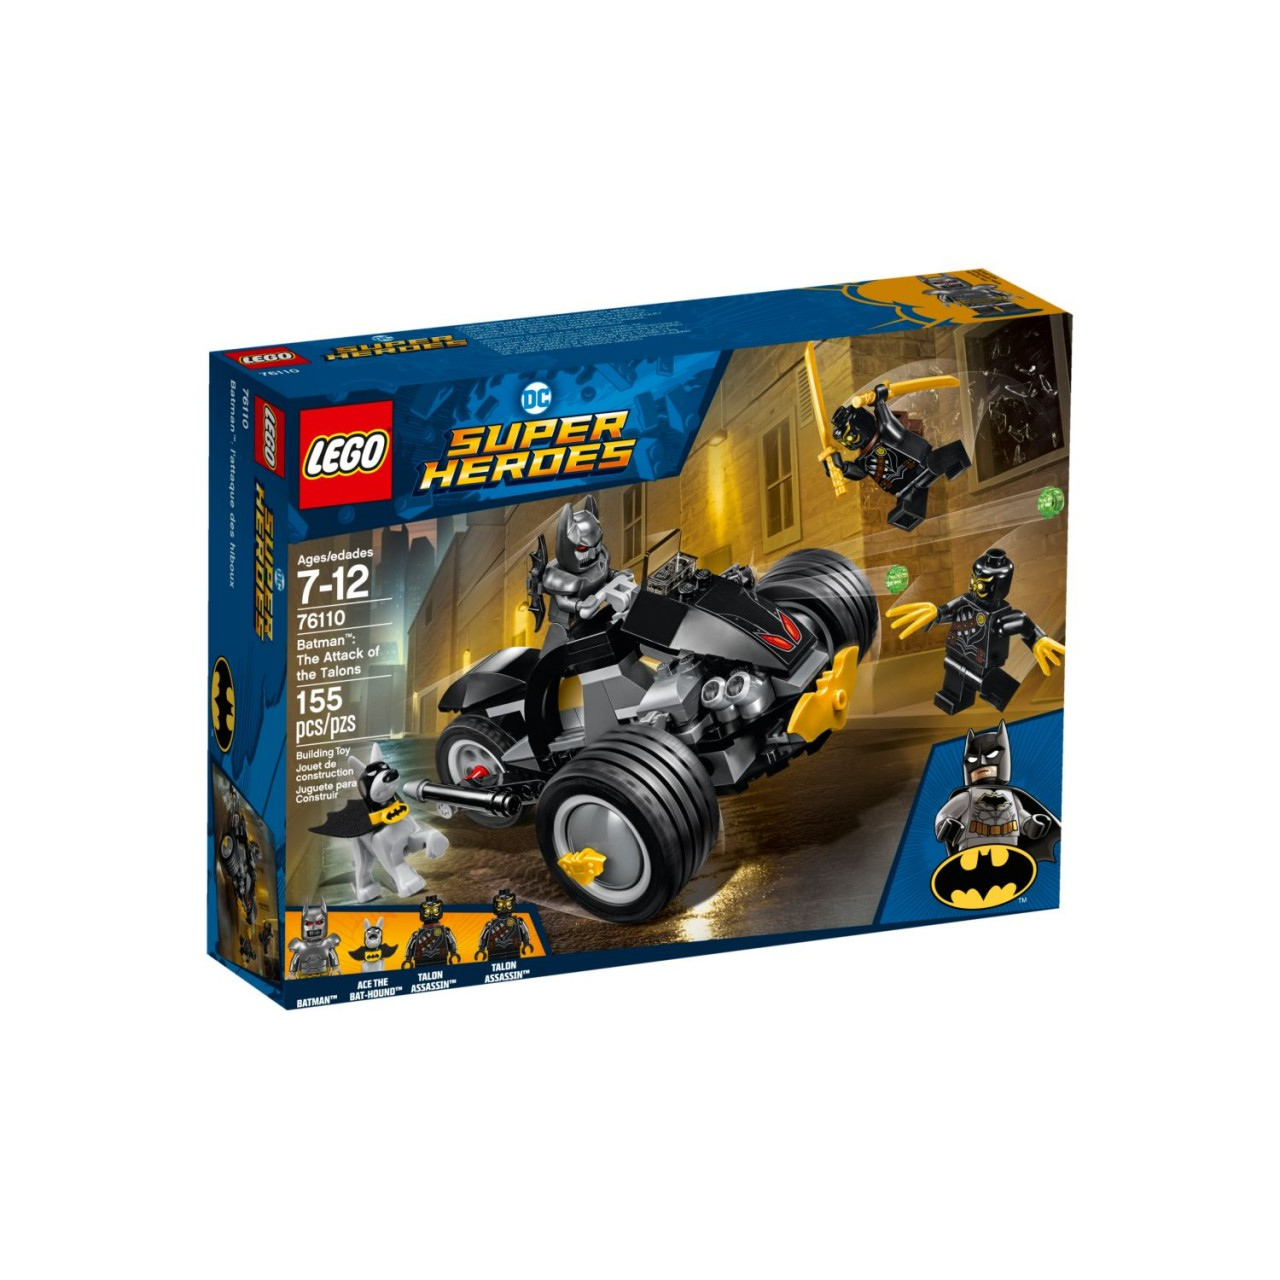 LEGO DC SUPER HEROES 76110 Batman: Attacke der Talons